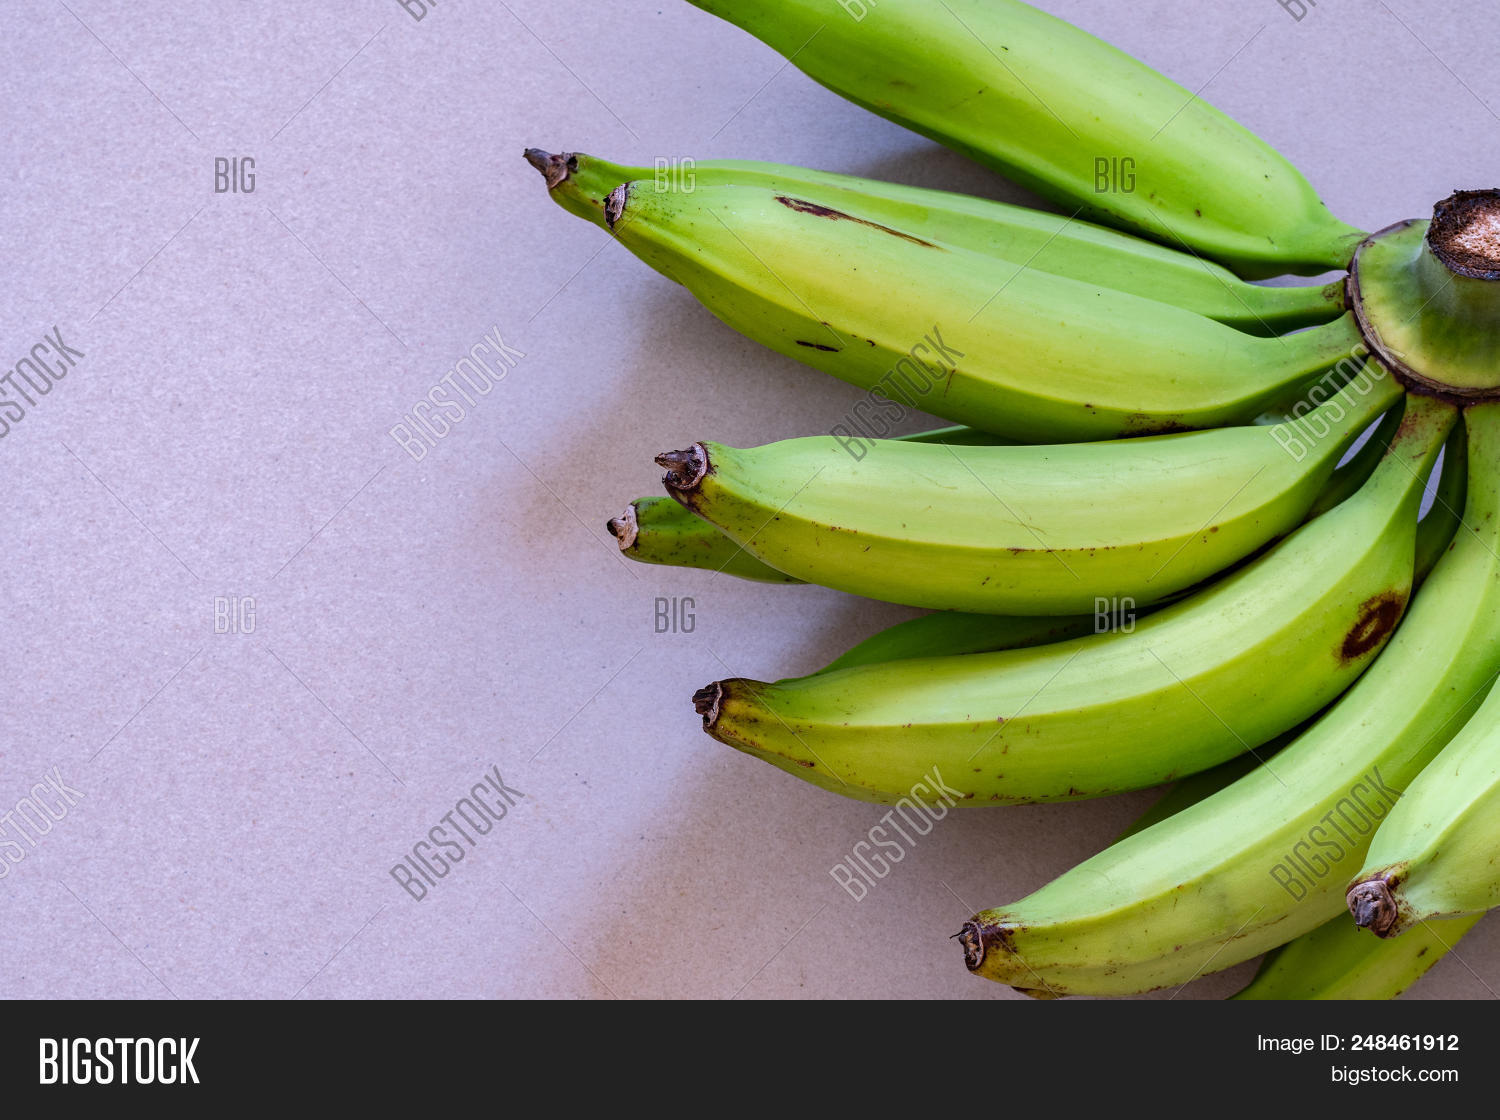 Image result for RAW BIG SIZE BANANA